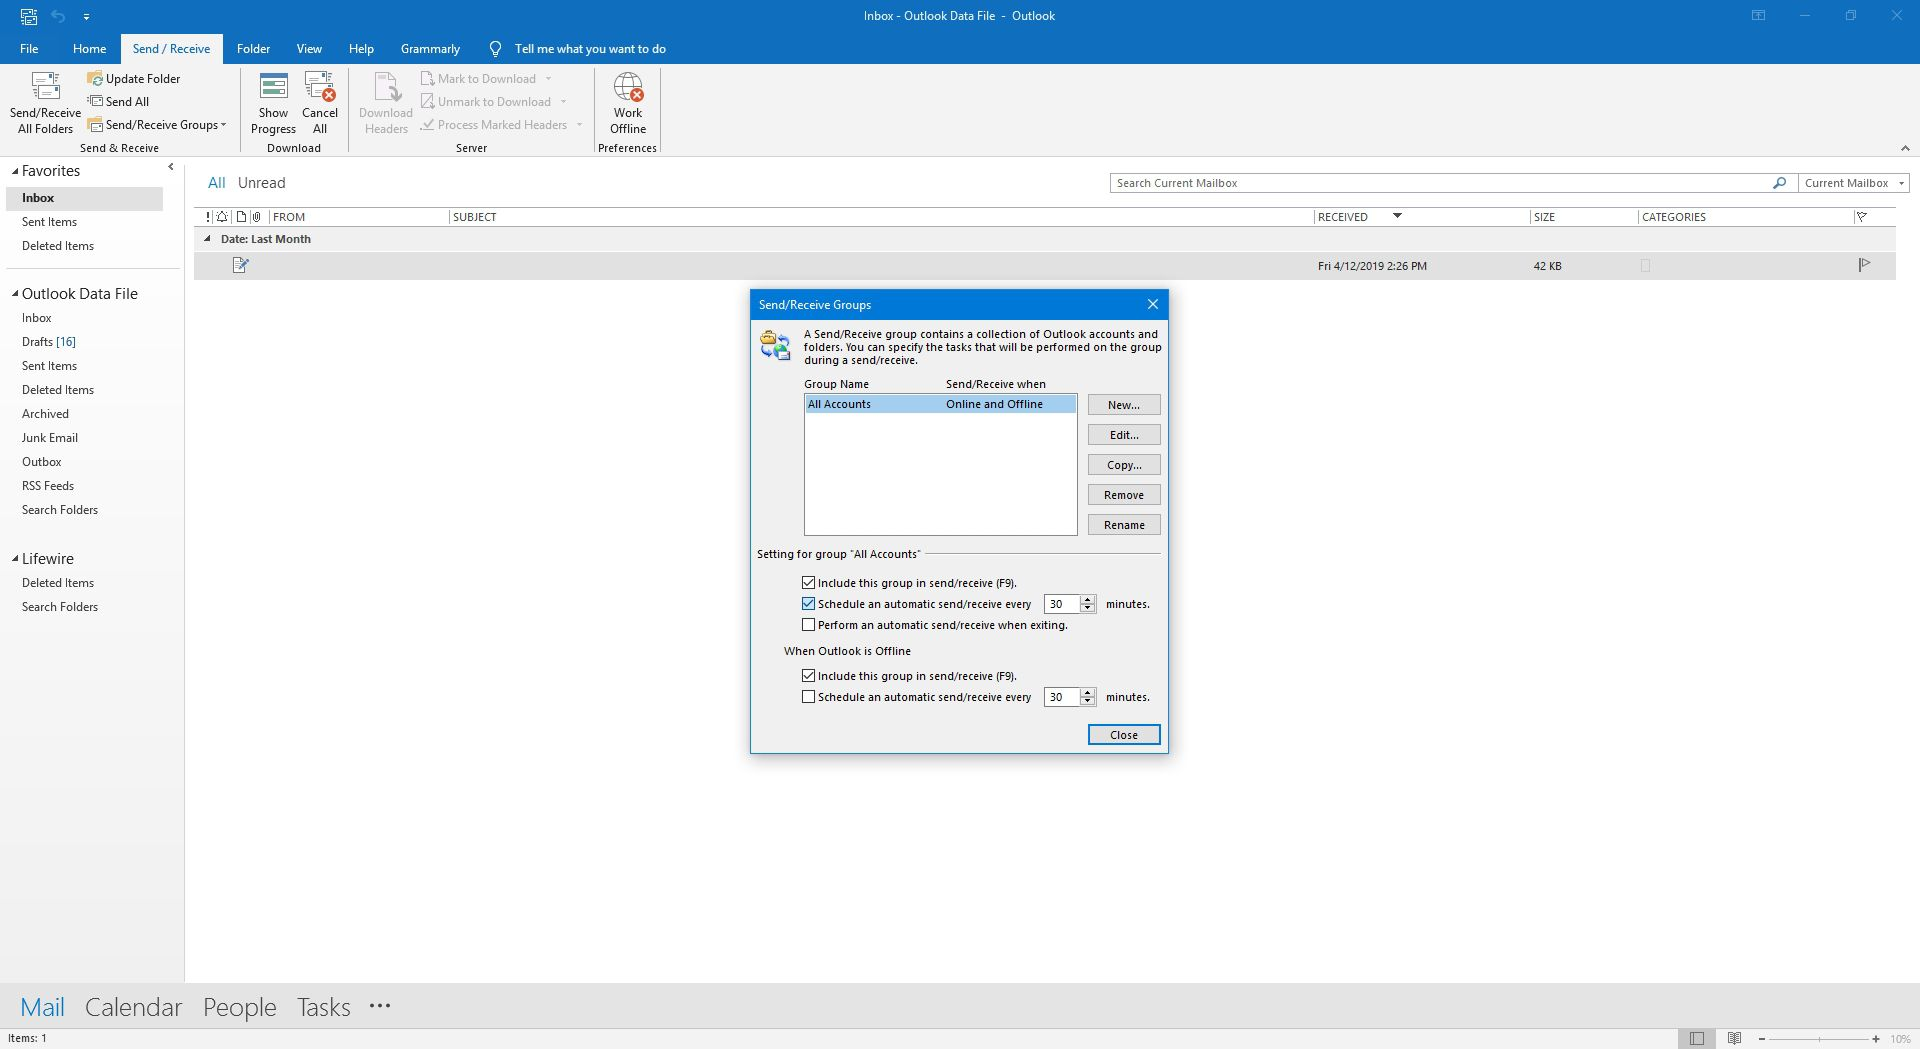 How to Tweak When Outlook Sends and Receives Emails